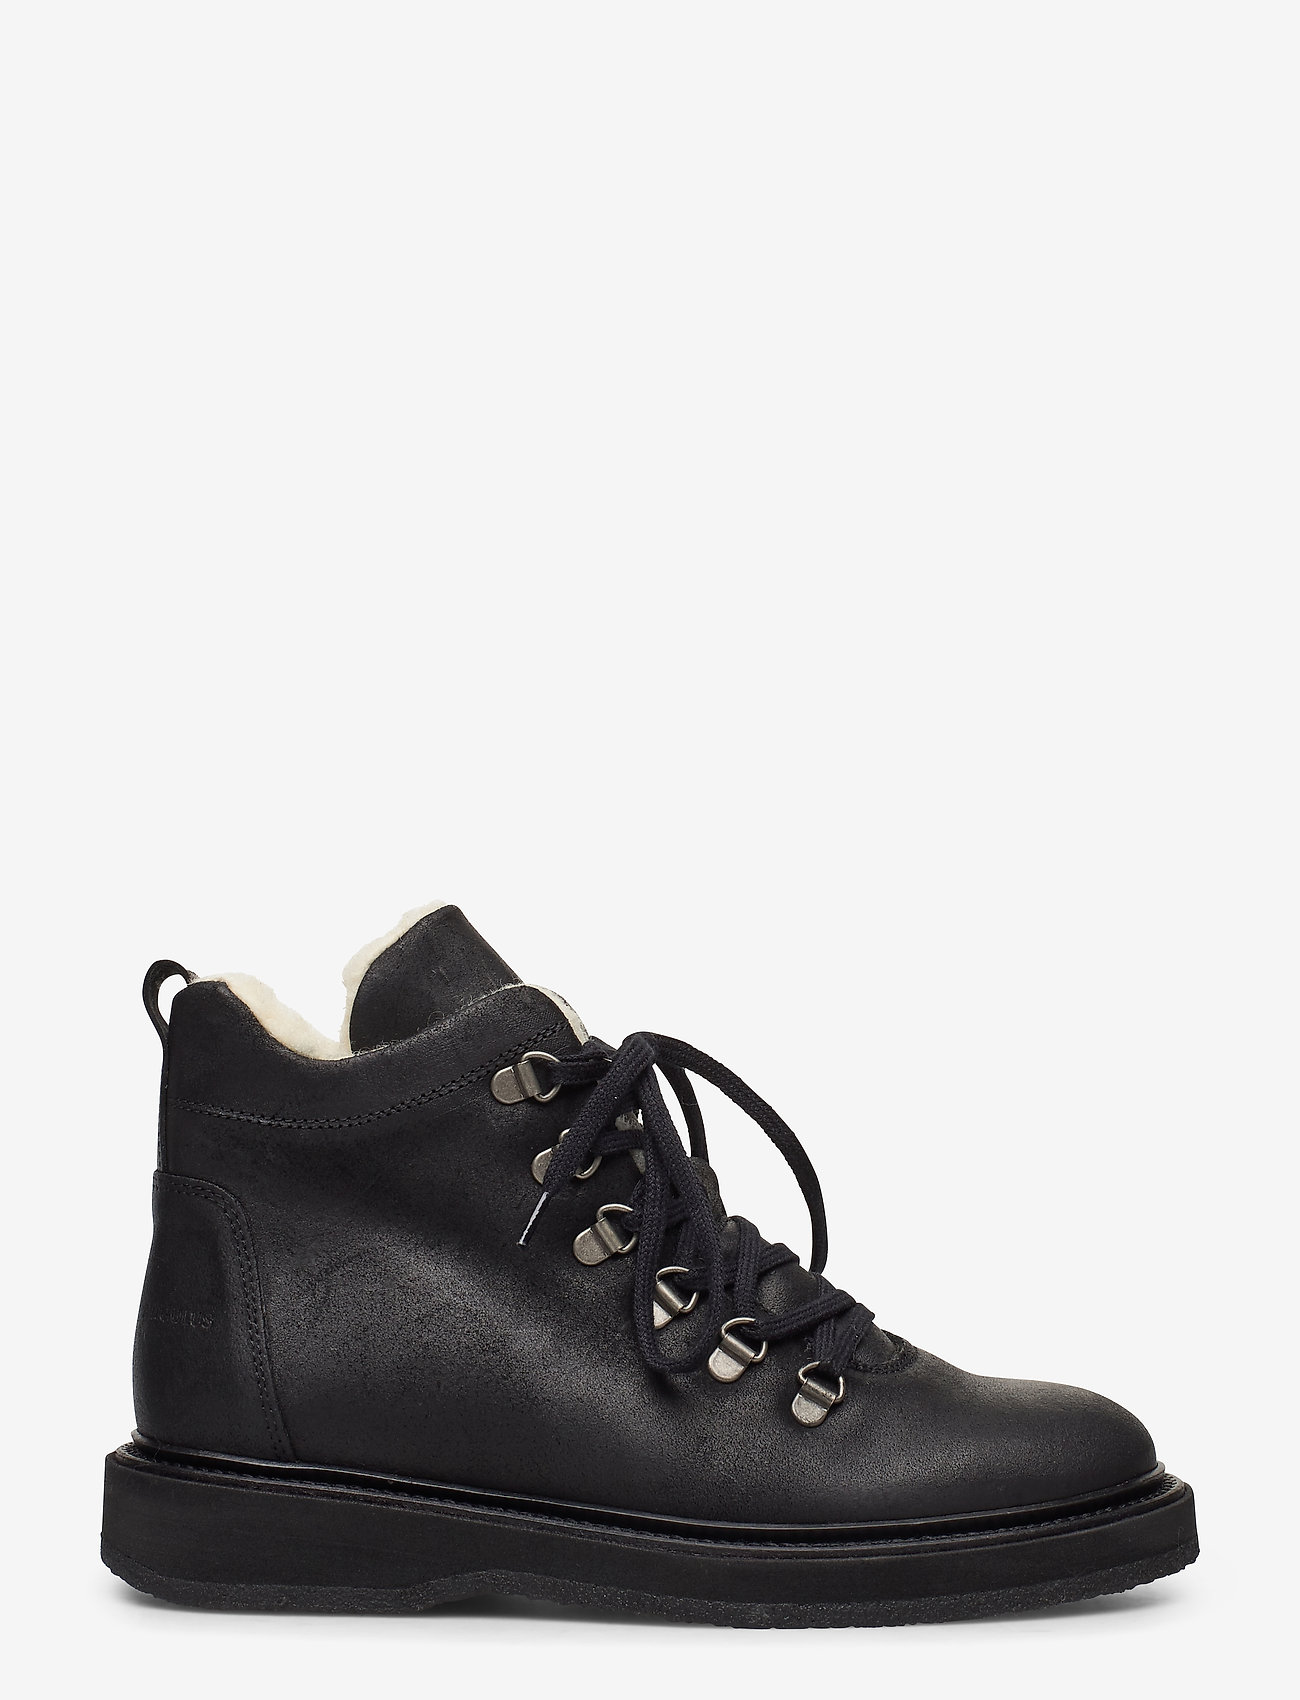 ANGULUS - Boots - flat - with laces - flat ankle boots - 2100 black - 1